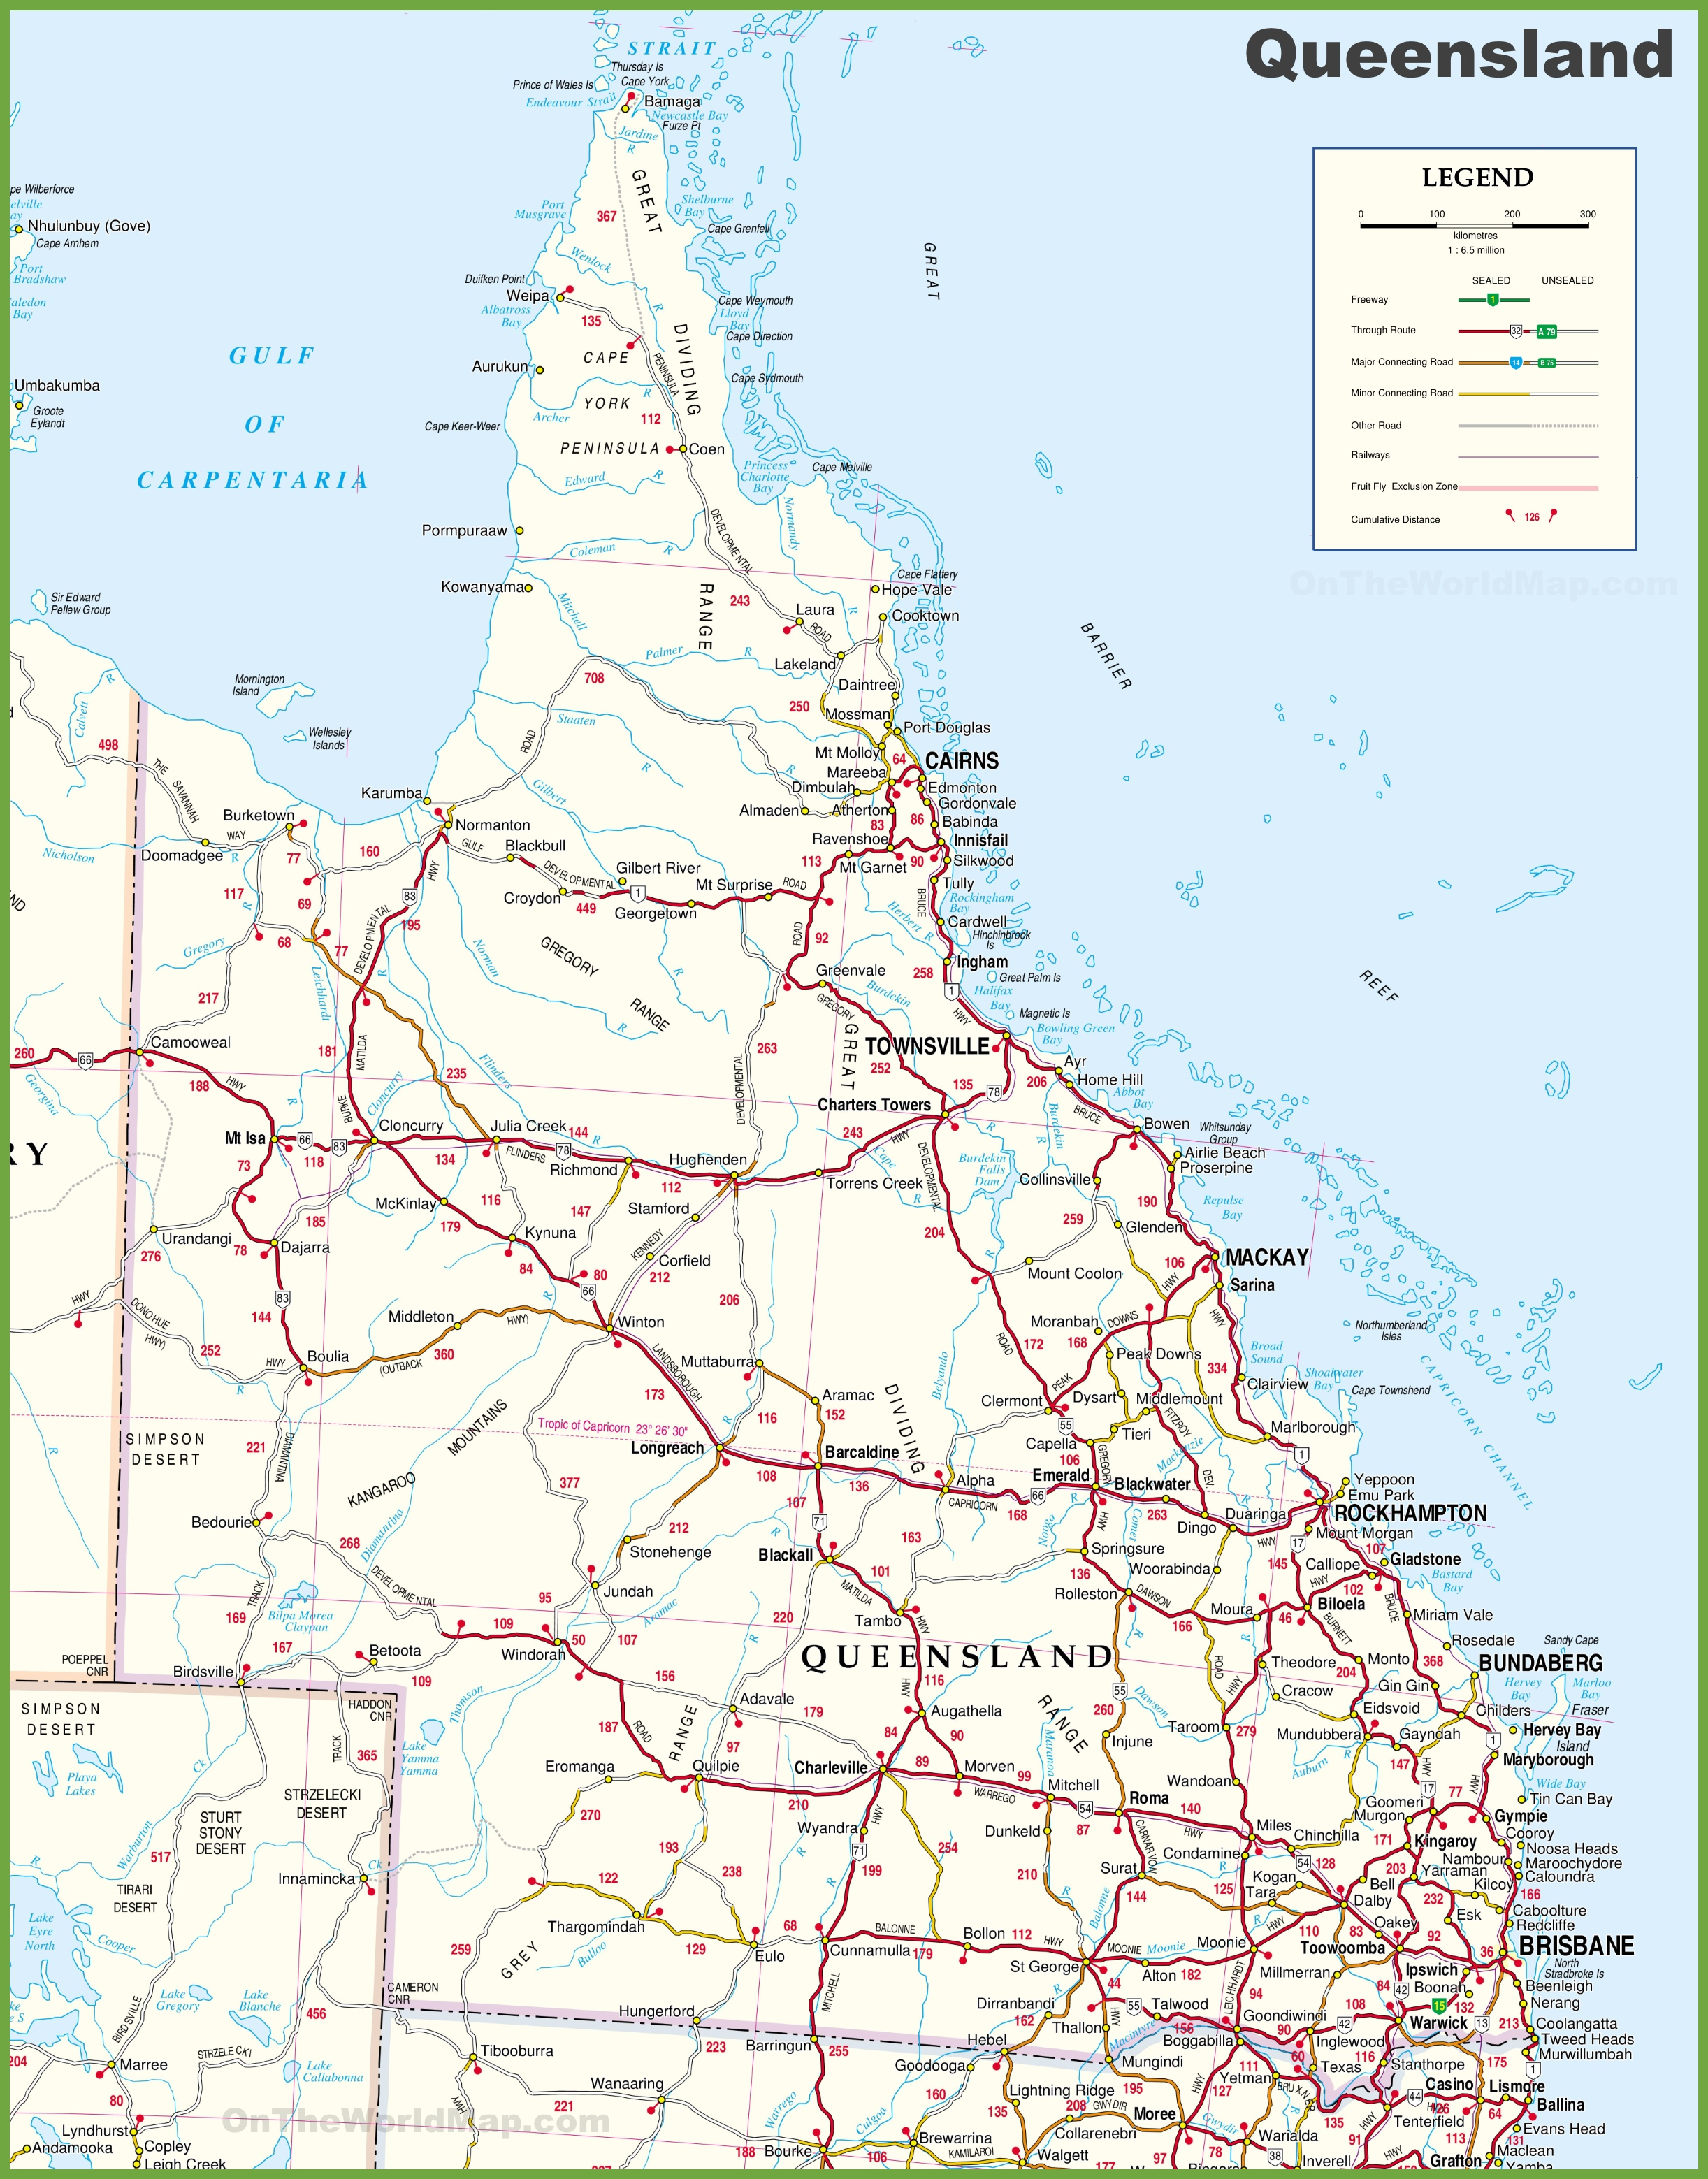 Map Queensland.Large Detailed Map Of Queensland With Cities And Towns